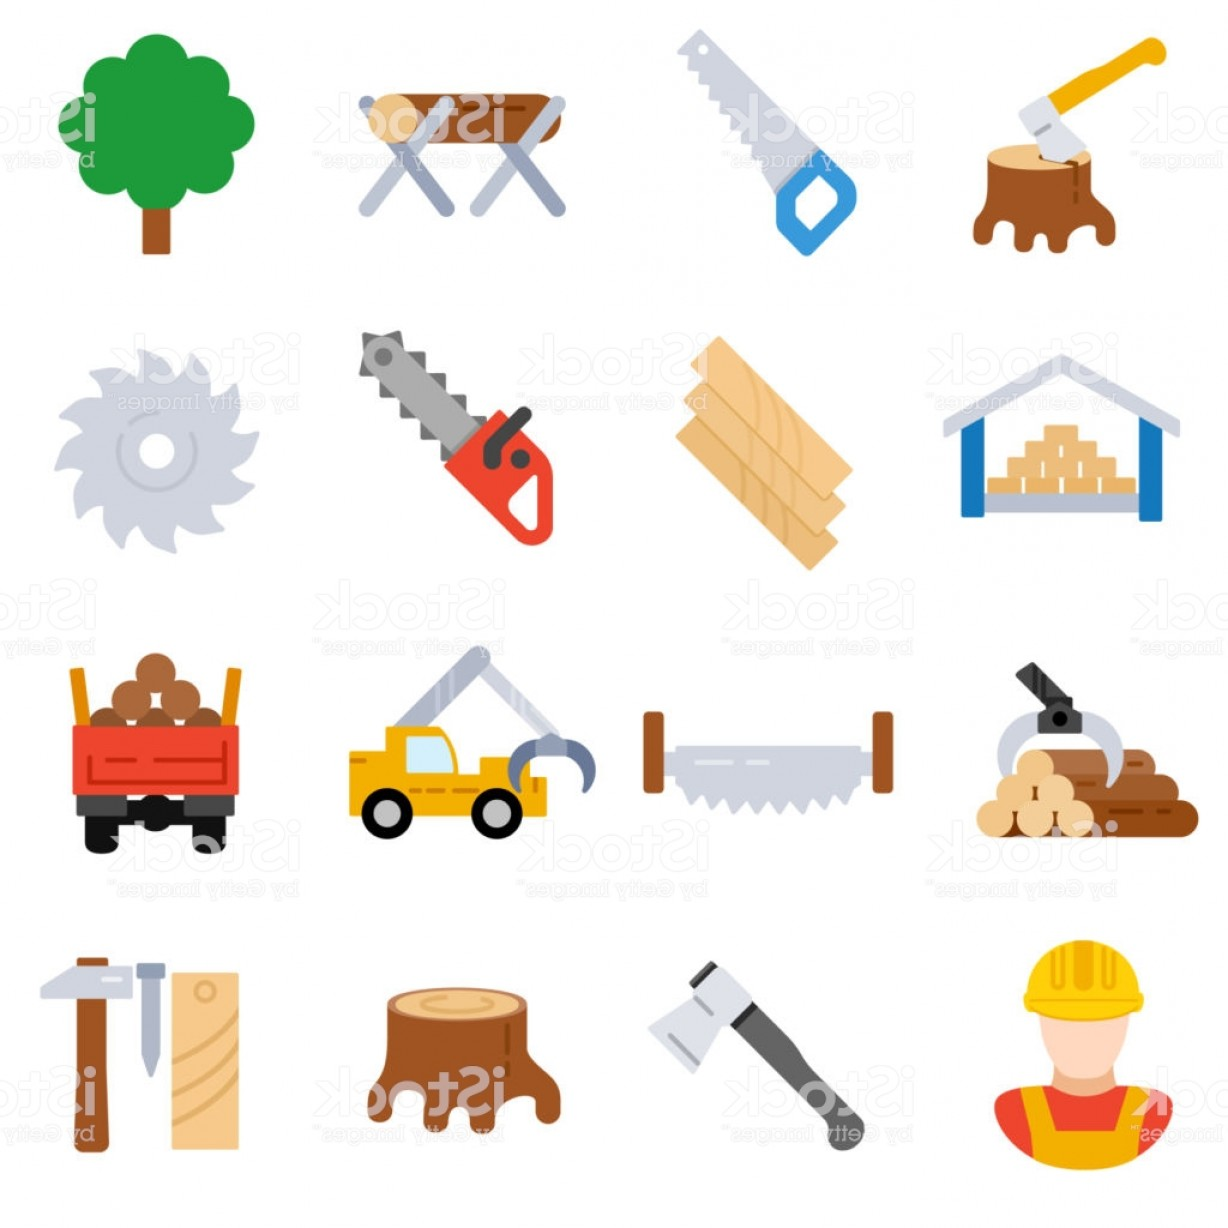 Sawmill clipart banner royalty free Sawmill Icons Set Woodworking Flat Design Gm | SOIDERGI banner royalty free